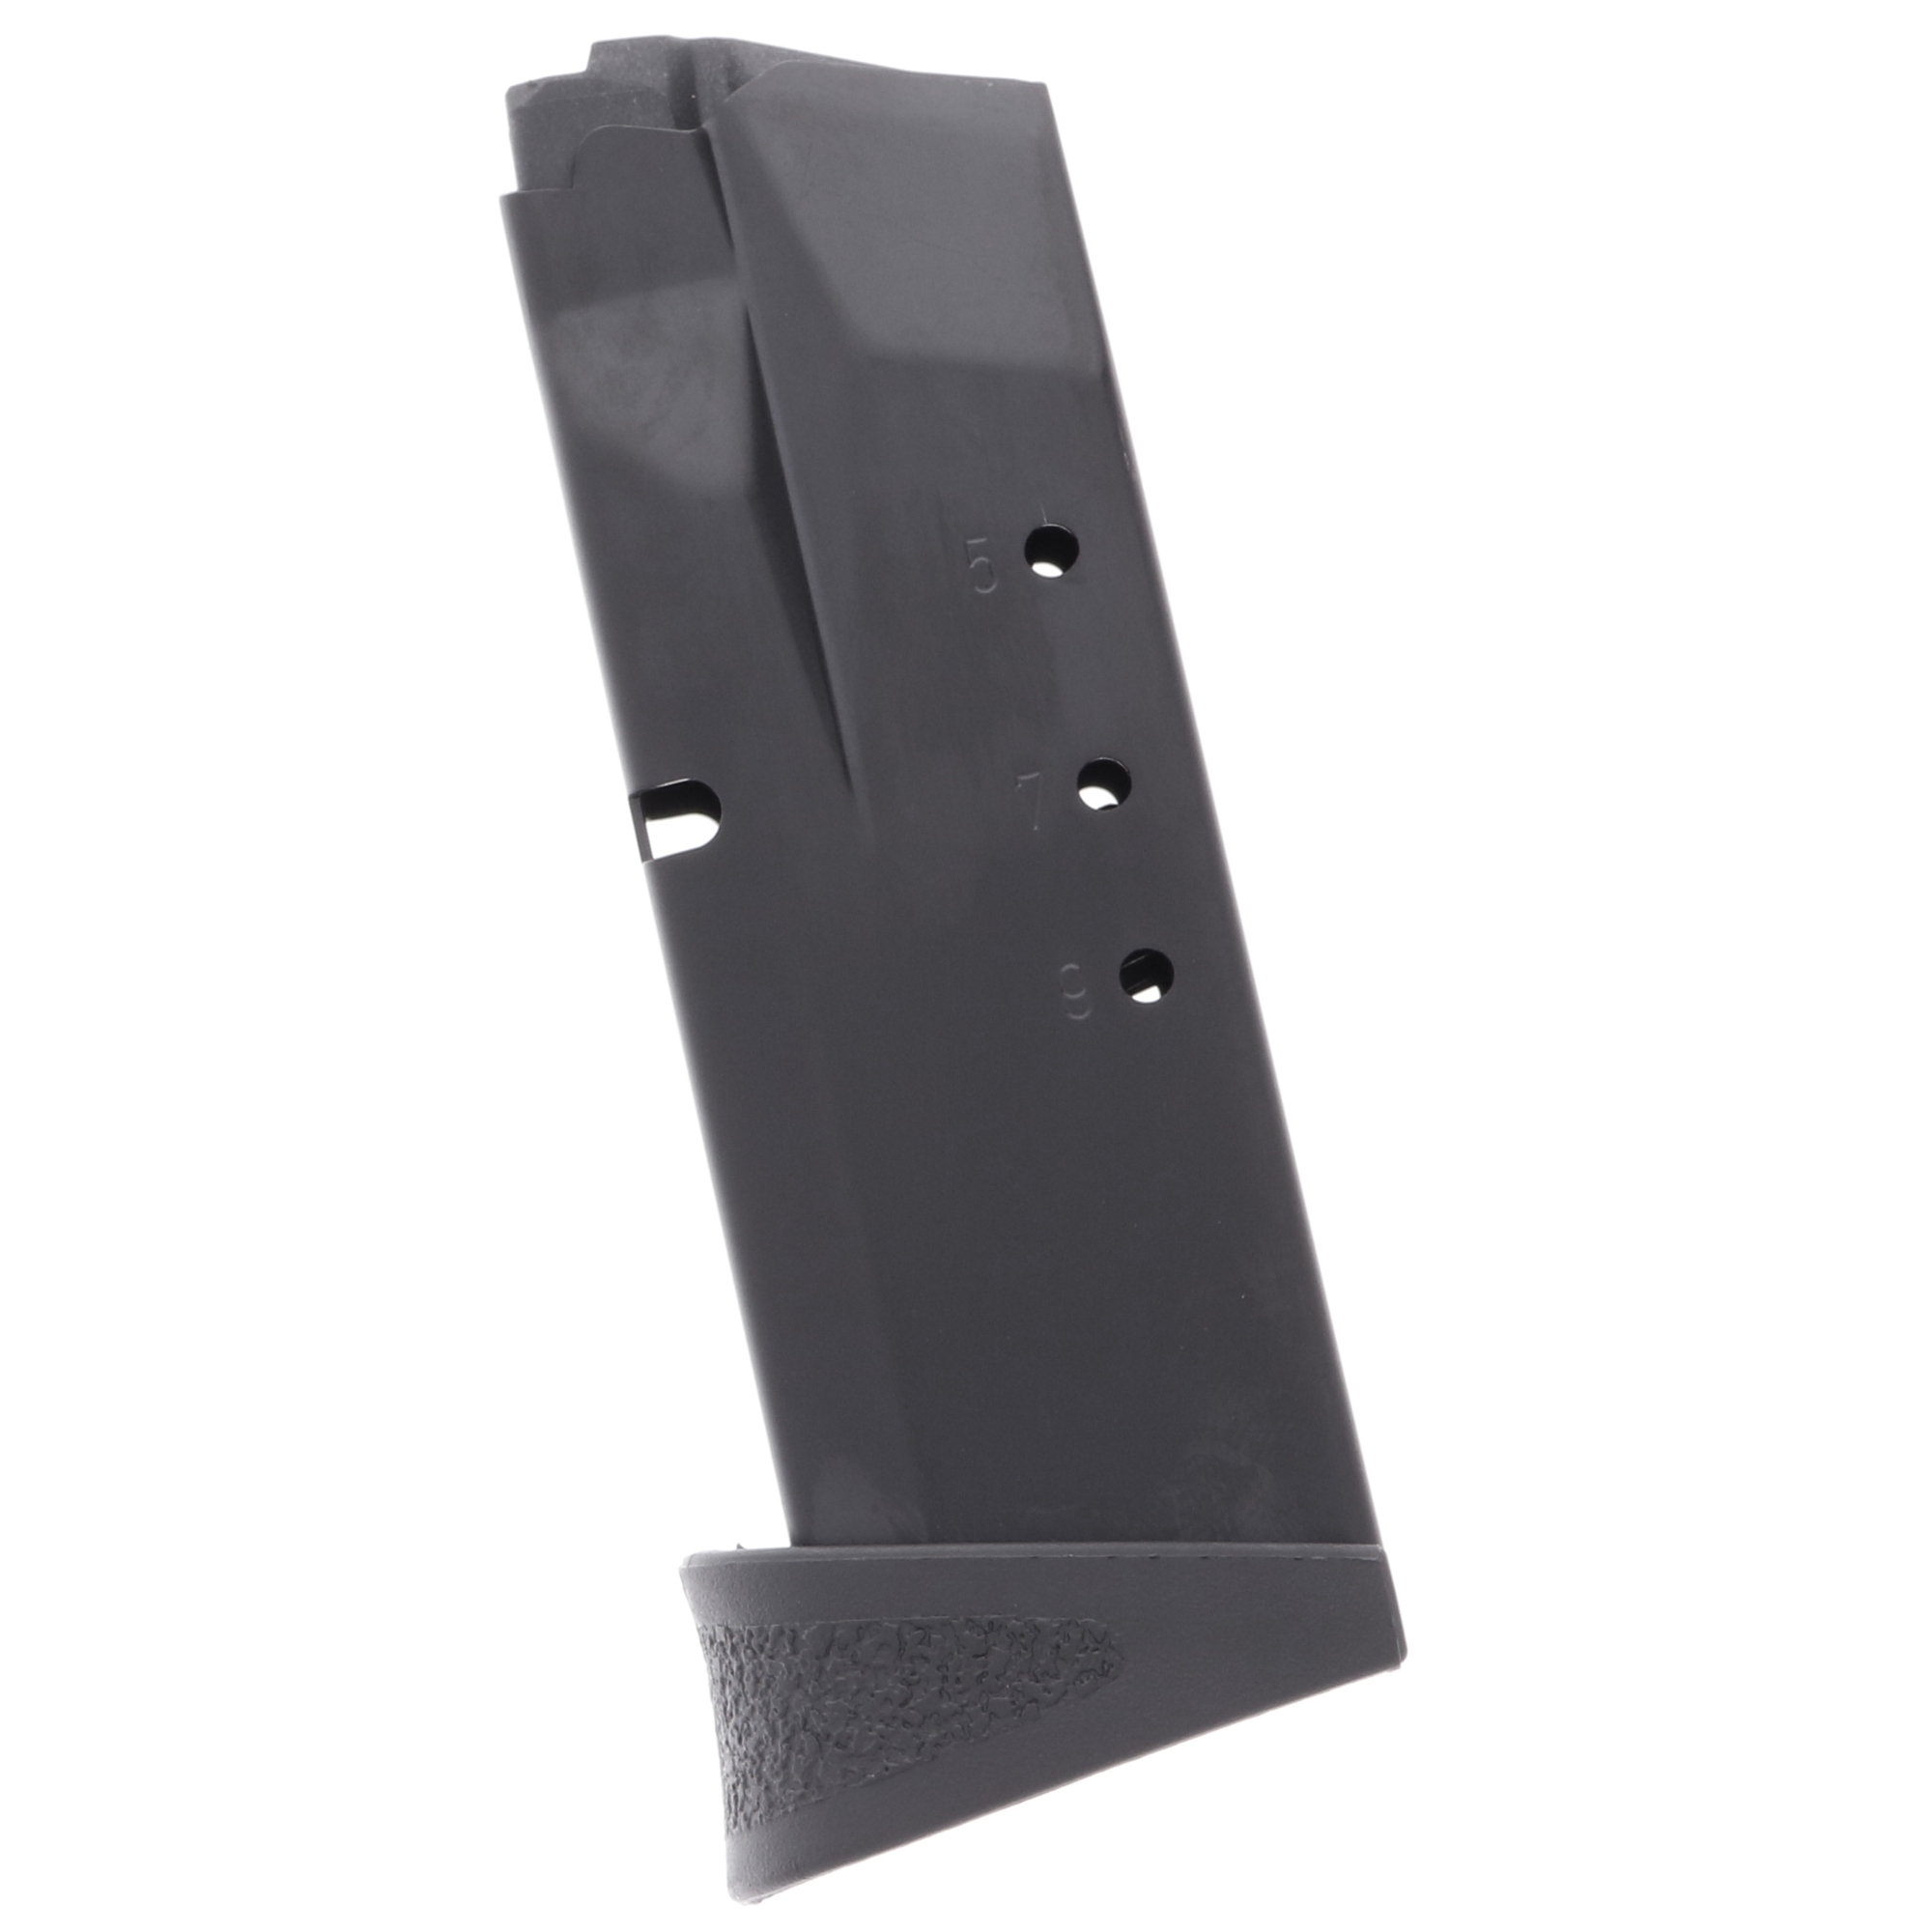 Smith & Wesson S&W M&P Compact 40 S&W, 357 Sig 10-Round Factory Magazine with Finger Rest